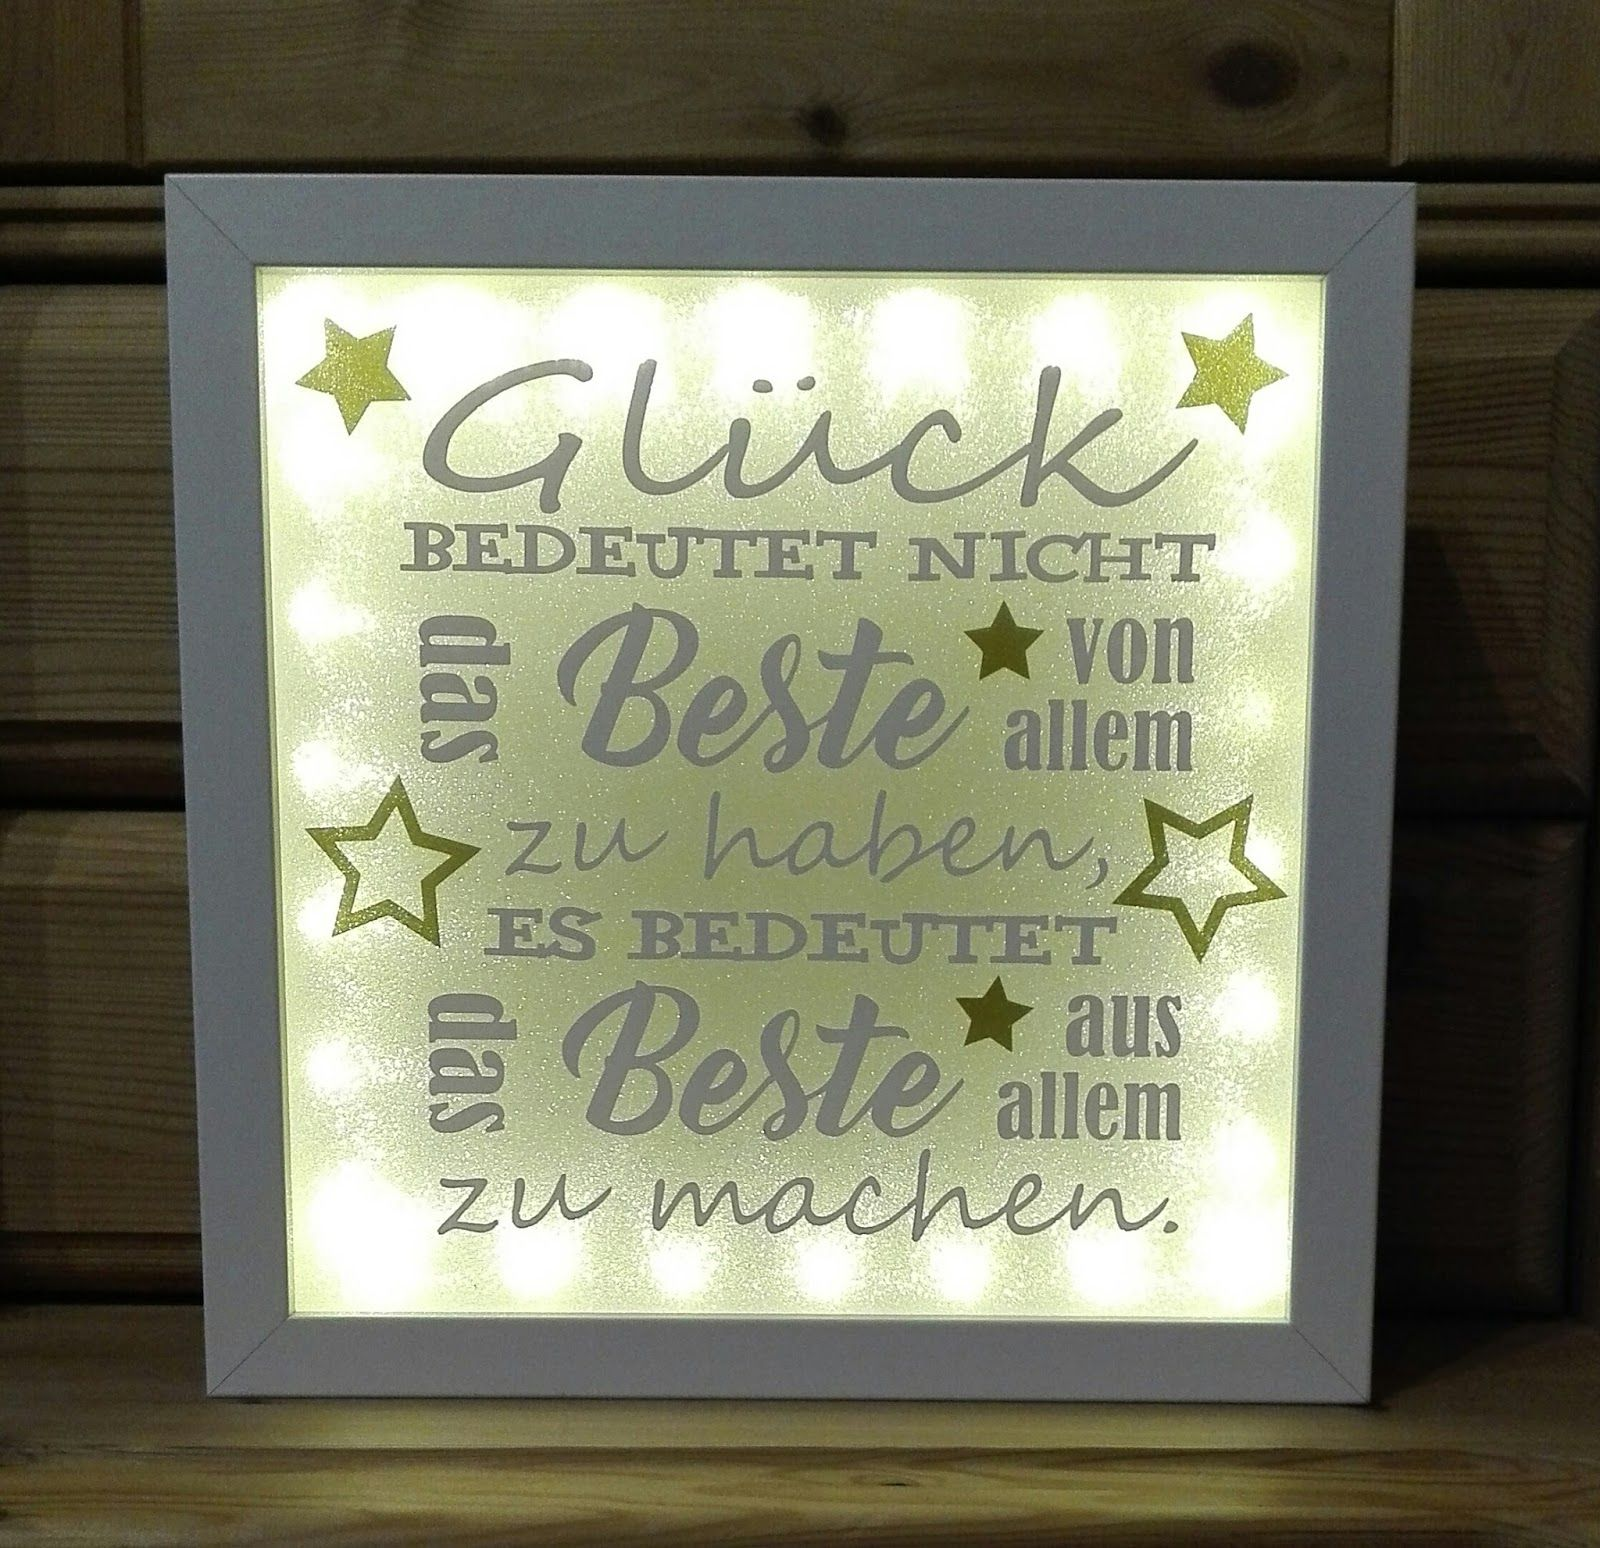 ribba led gl ck spr che bilderrahmen lichter silhouette plotter frame und lettering. Black Bedroom Furniture Sets. Home Design Ideas